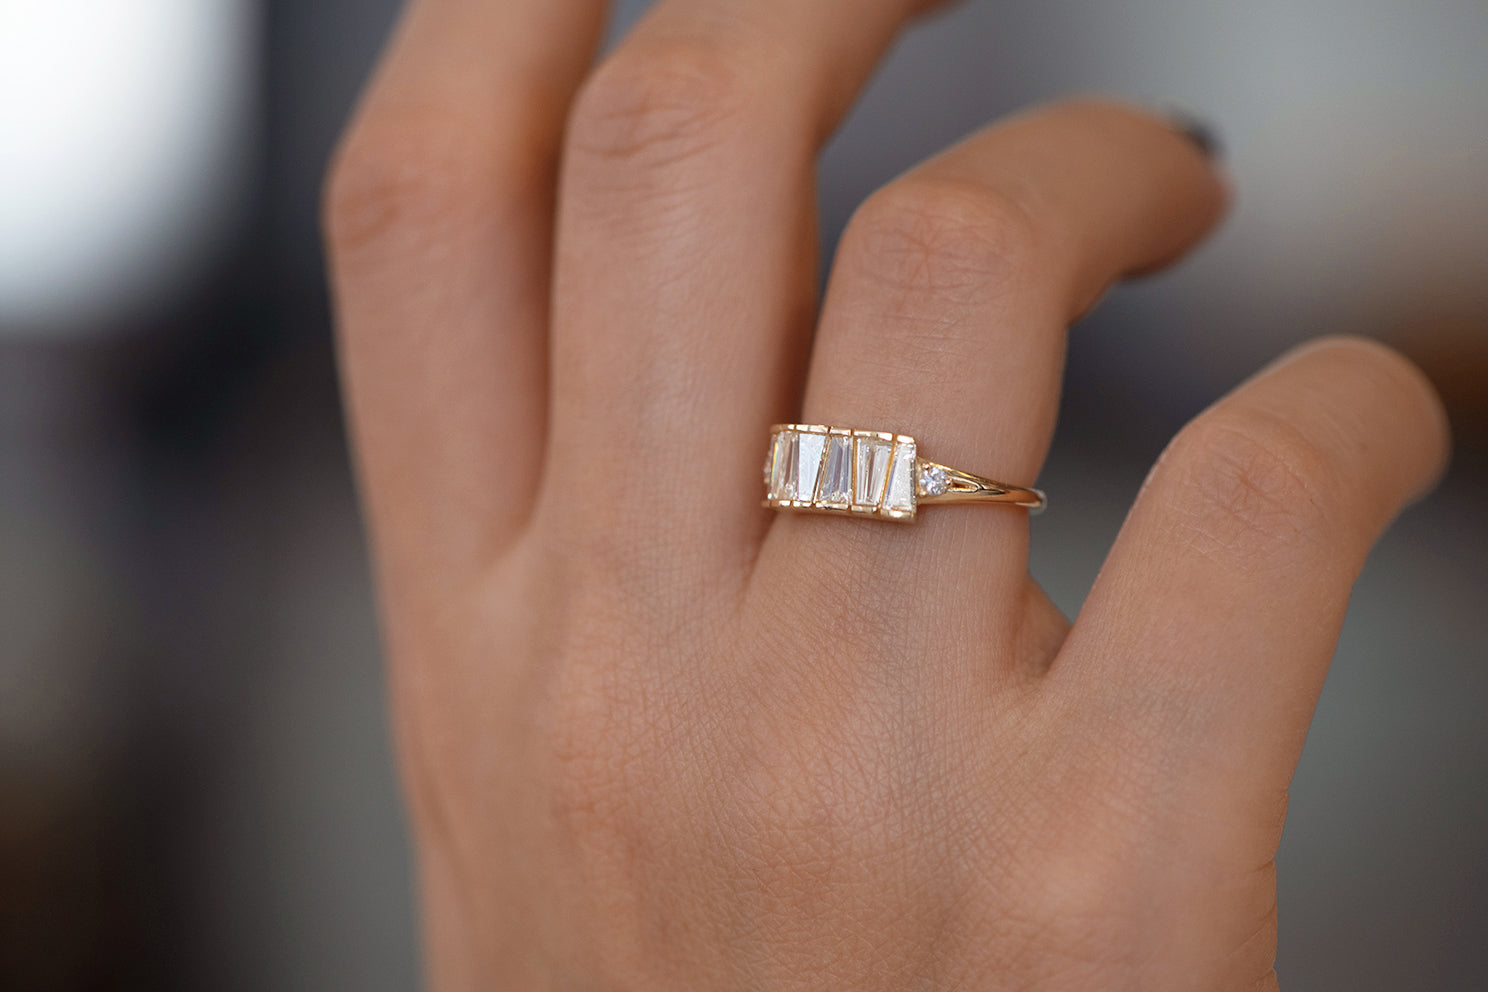 OOAK Tapered Baguette Diamond Lineup Ring Side View on Hand